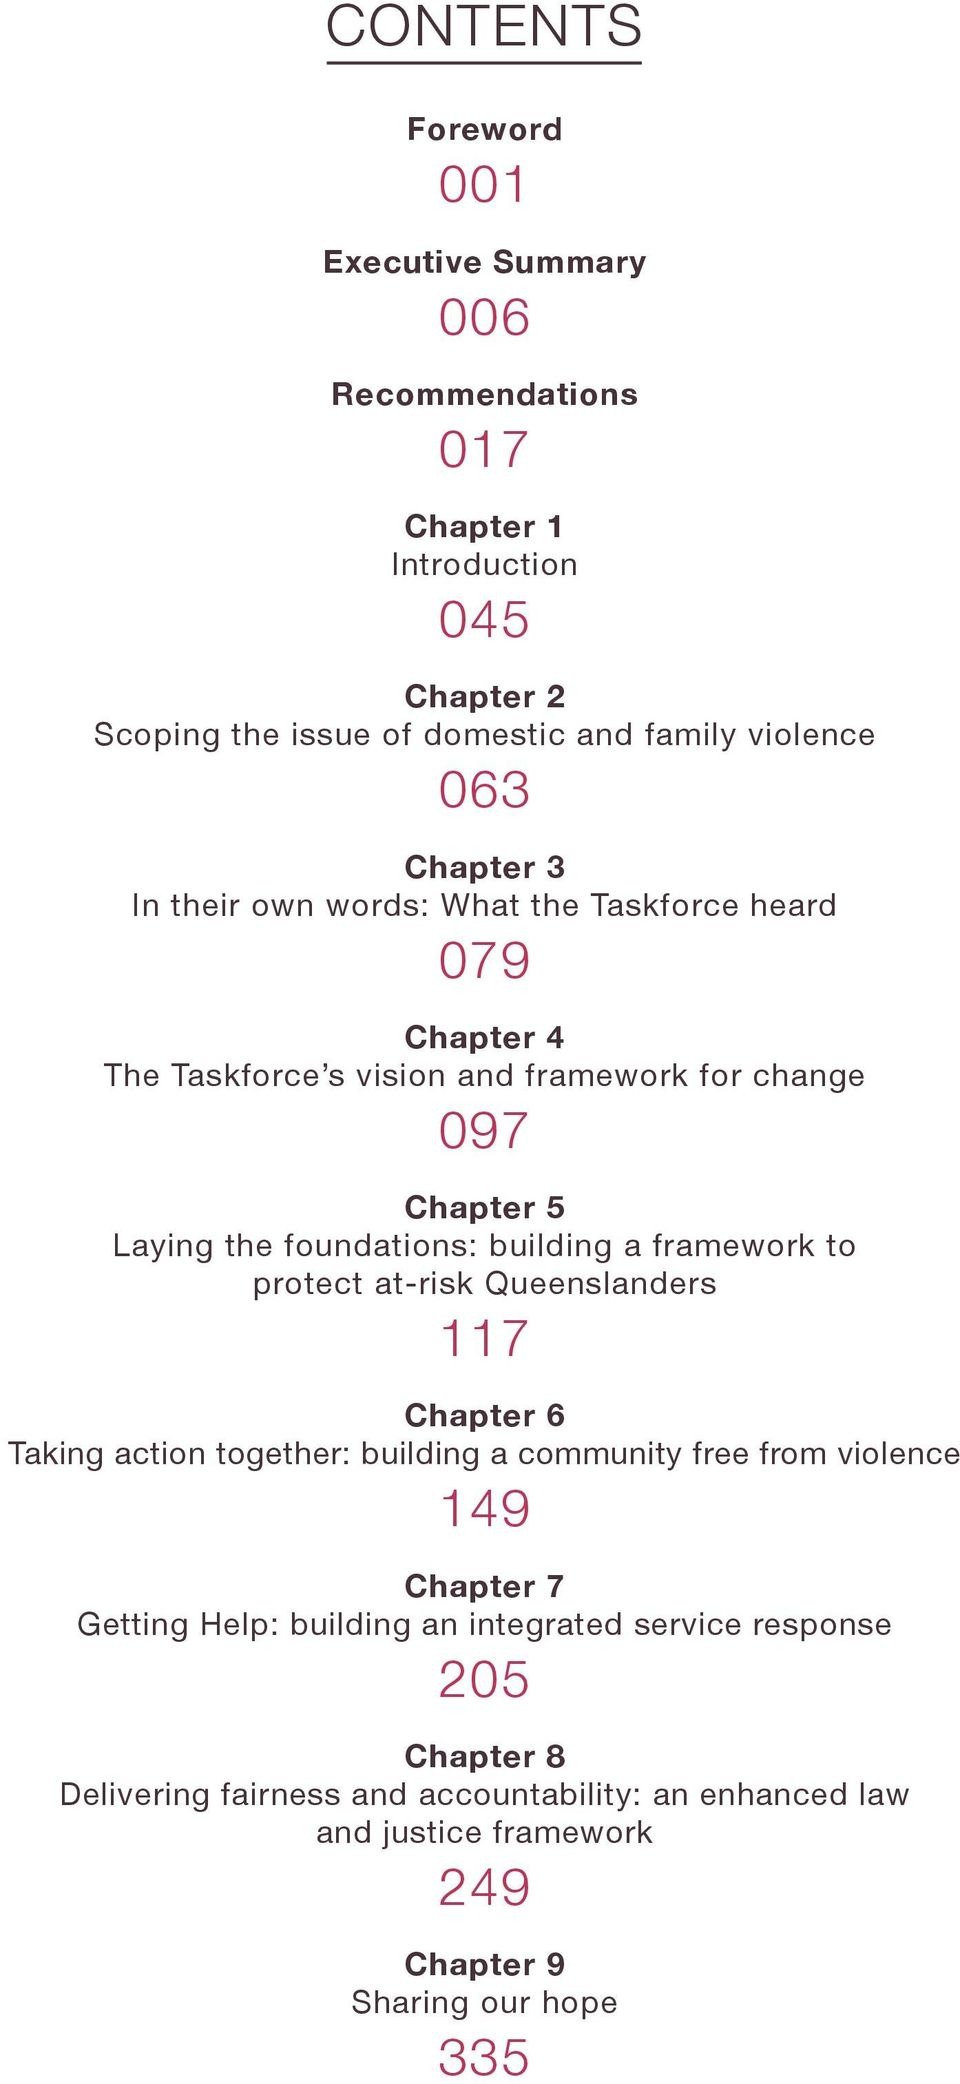 building a framework to protect at-risk Queenslanders 117 Chapter 6 Taking action together: building a community free from violence 149 Chapter 7 Getting